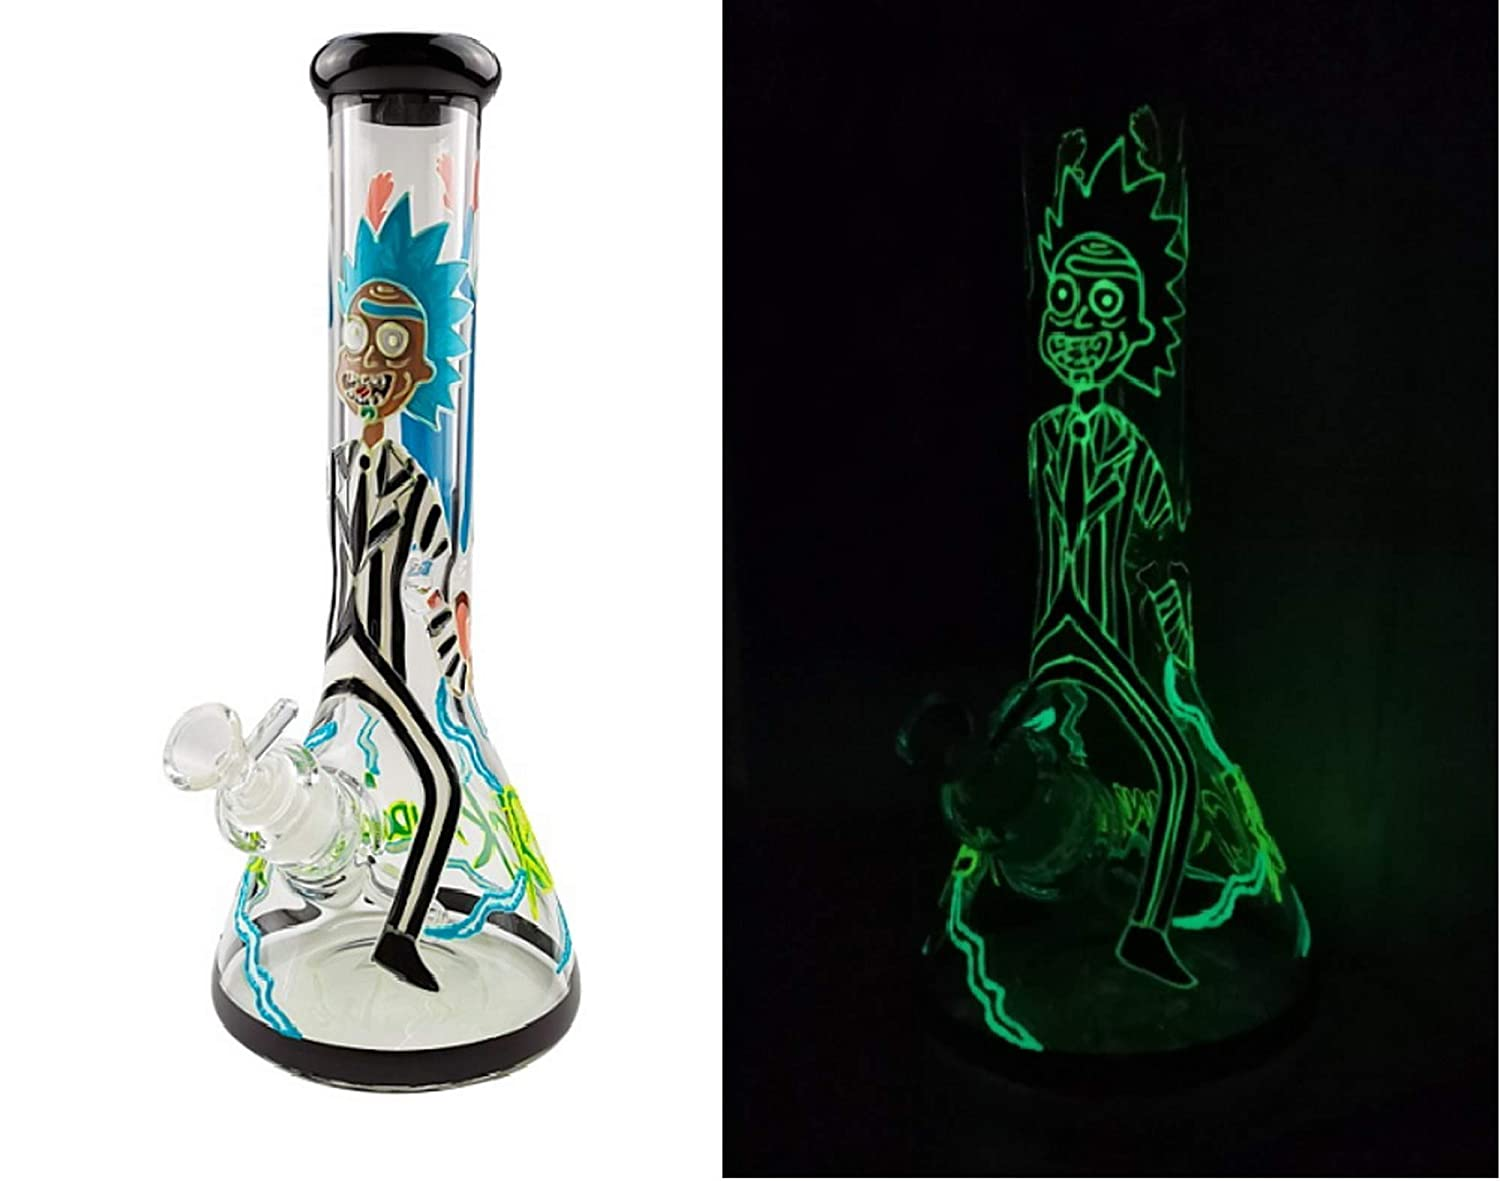 GoShopster 12.5 Inches Glass Vase Sculpture Hand Crafted and Designed Glow in the Dark